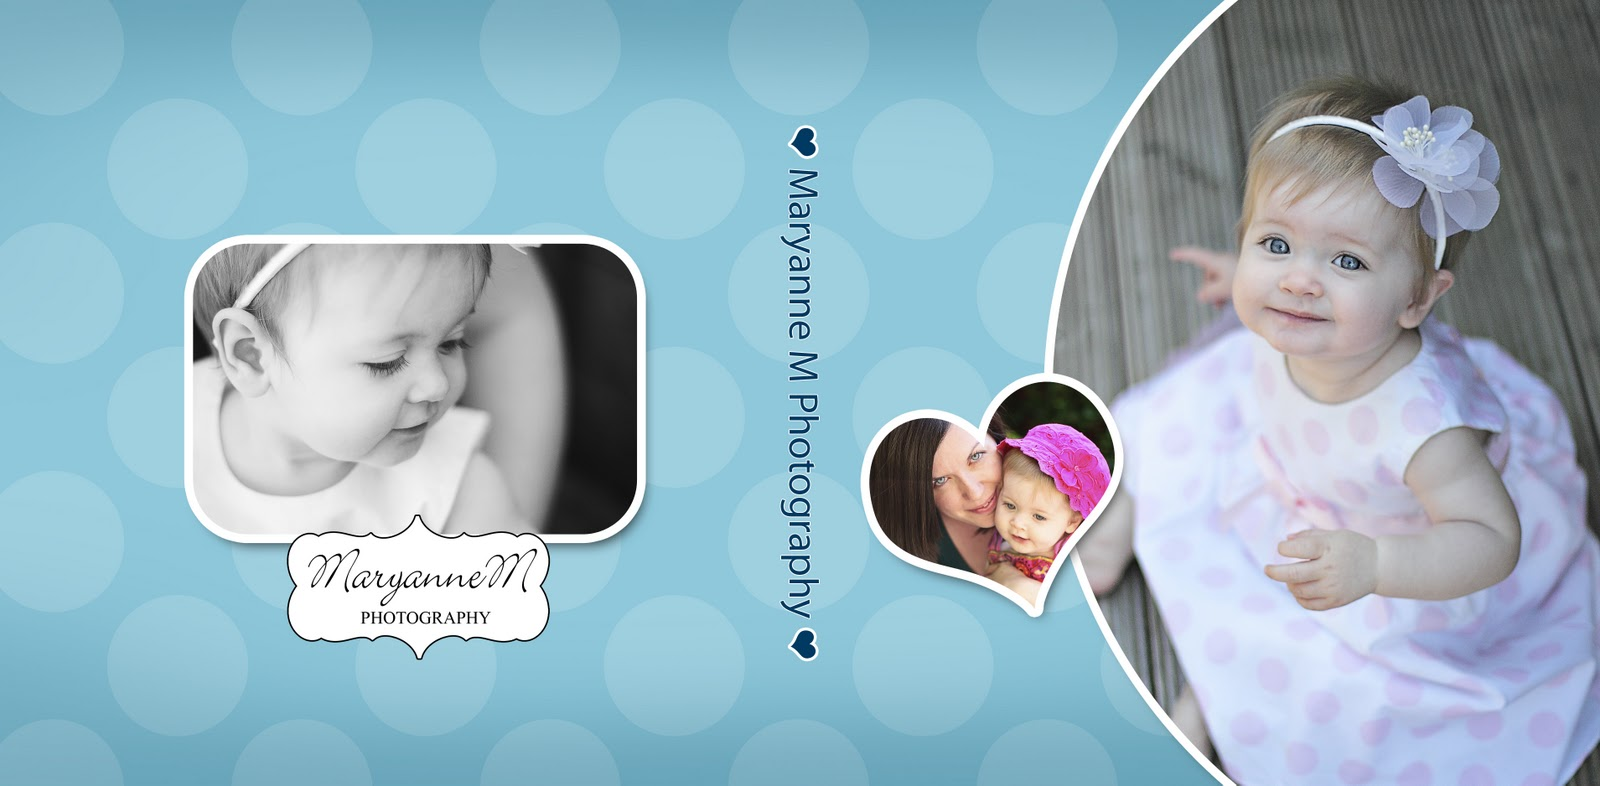 birthday photo album design templates ; OhBaby_CDCase_Single